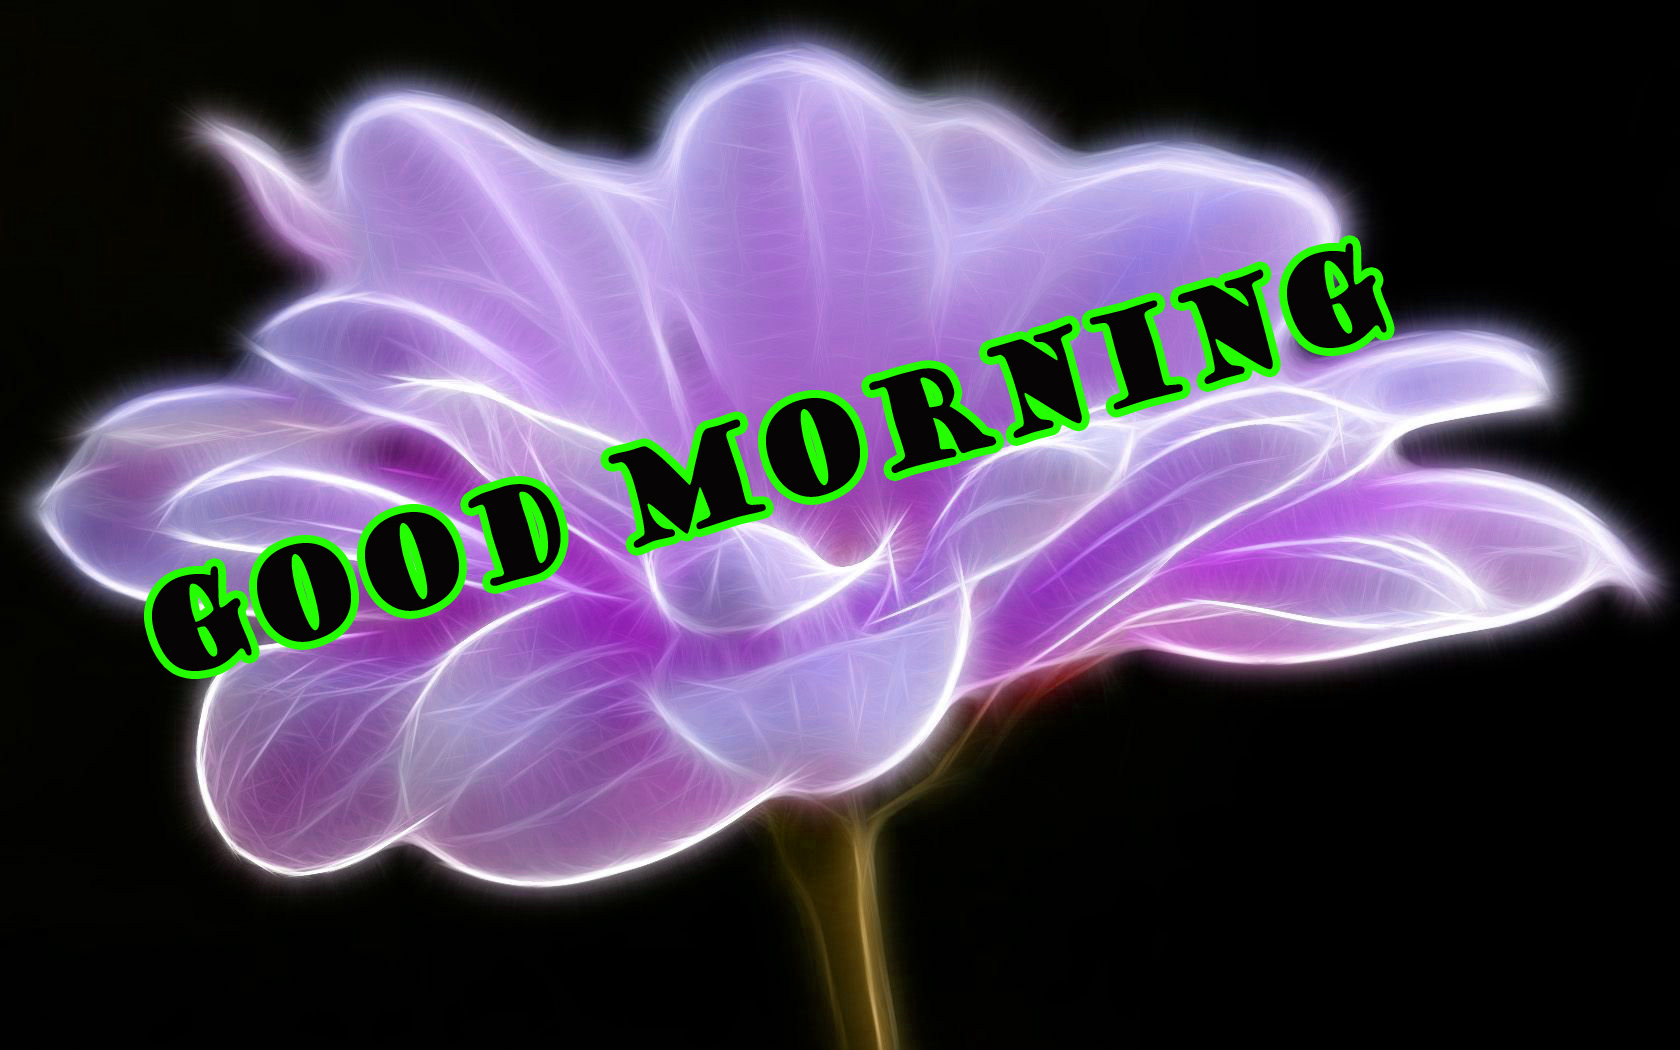 Good Morning Flowers Wallpaper Pictures Images Photo HD